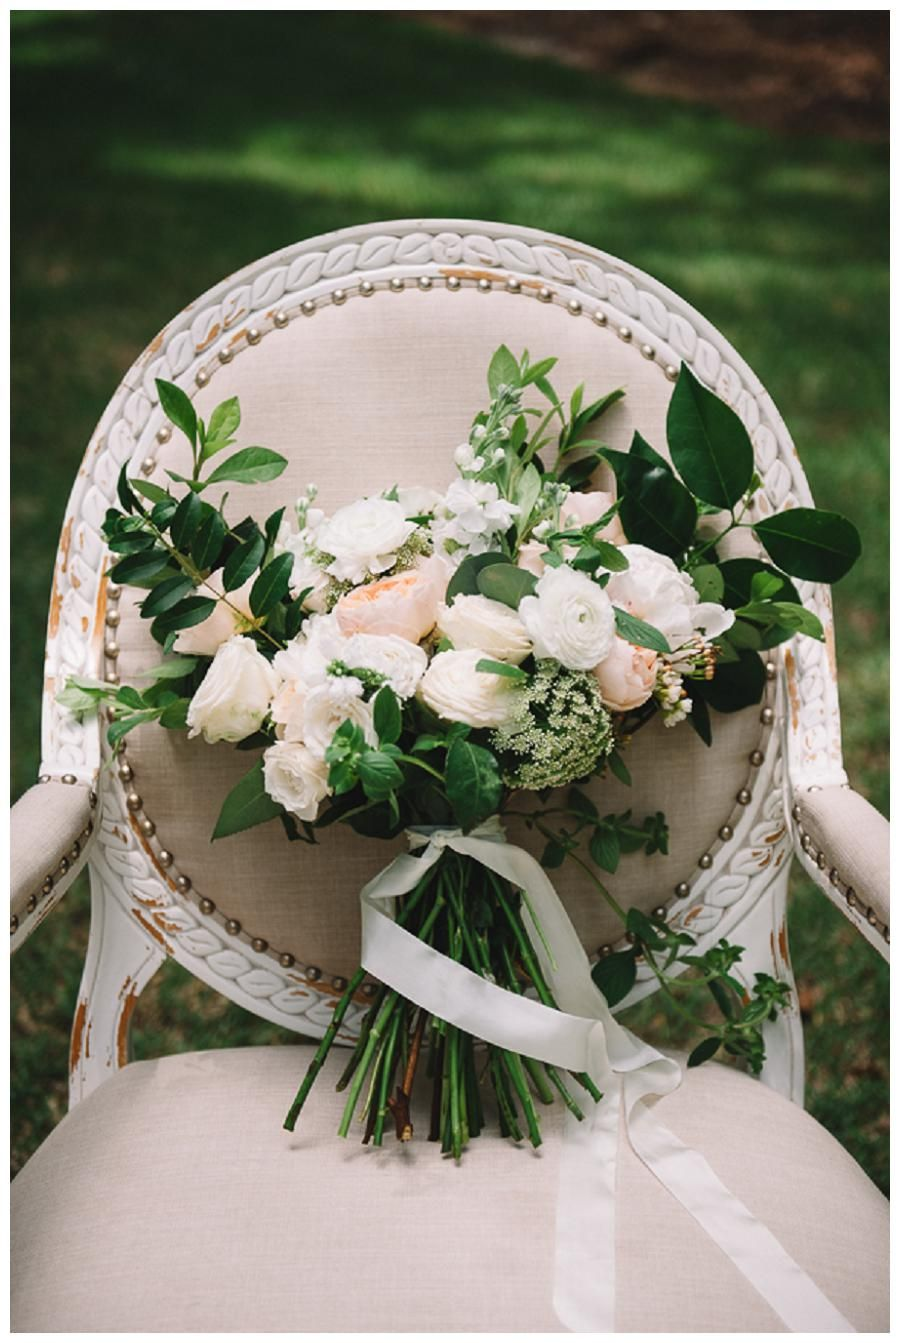 Bouquet of soft blush and peach blooms by Stephanie Gibbs Events, image by Jennings King Photography.